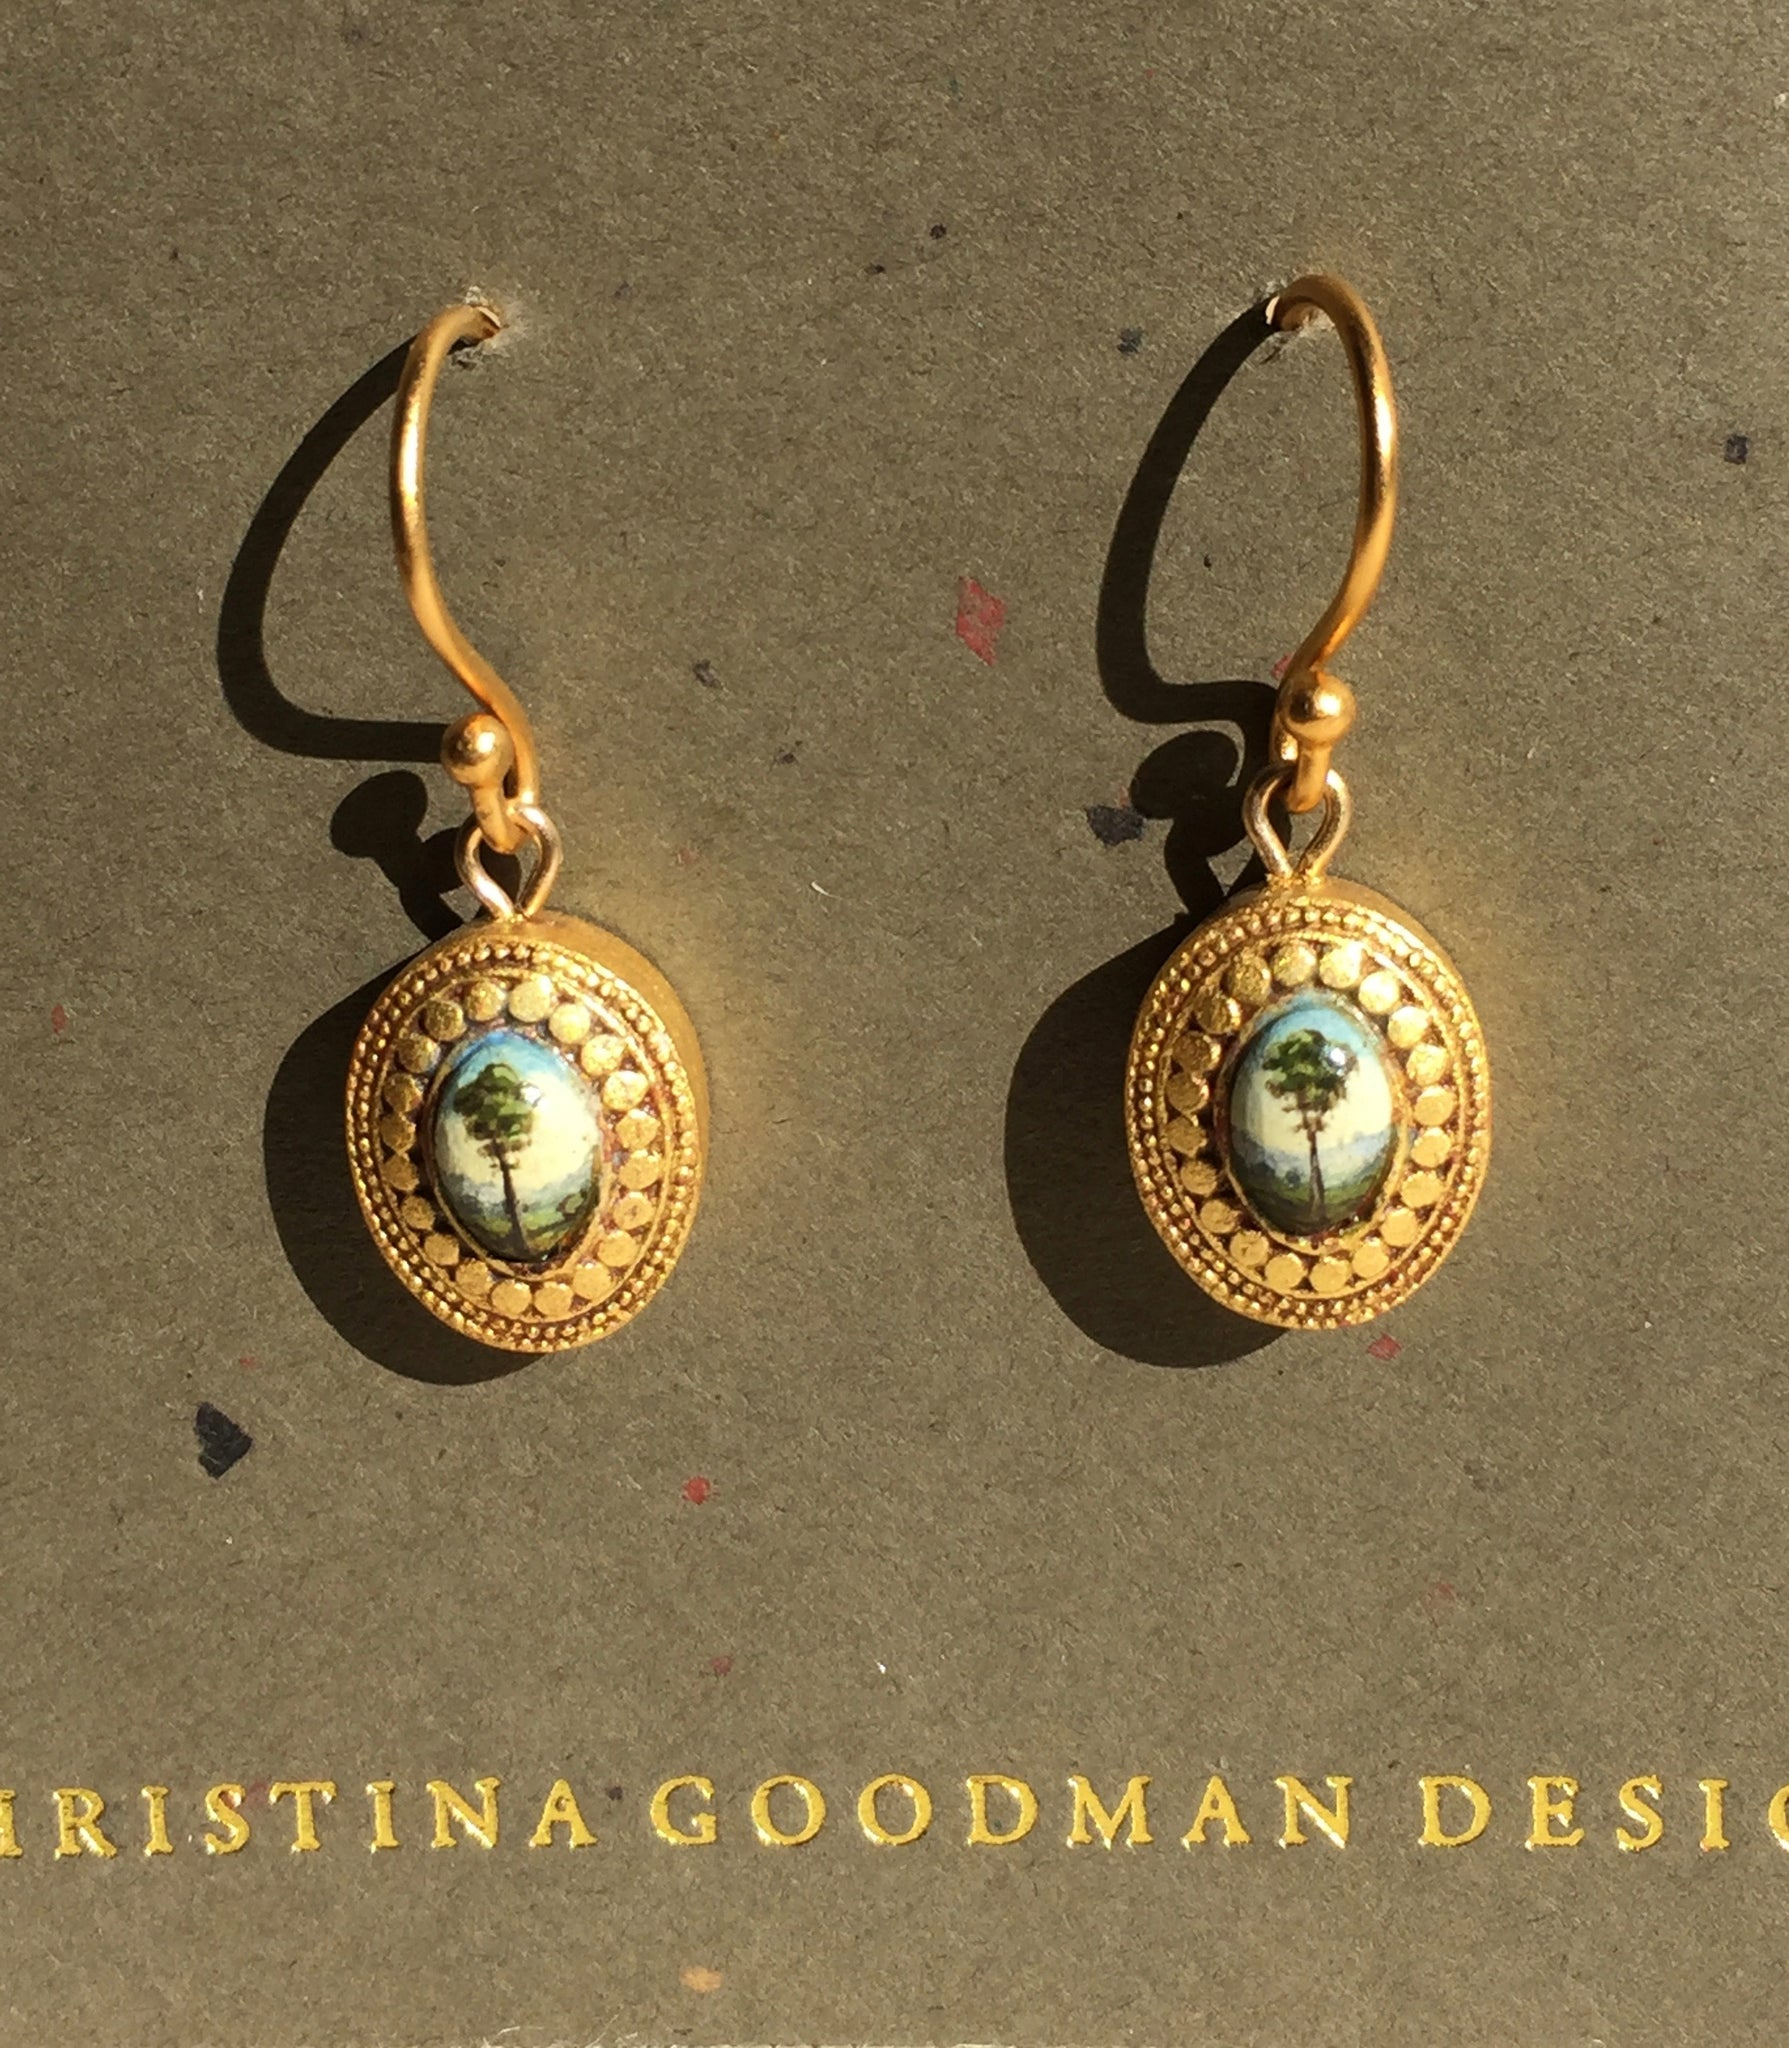 Christina Goodman Hand Painted Earrings